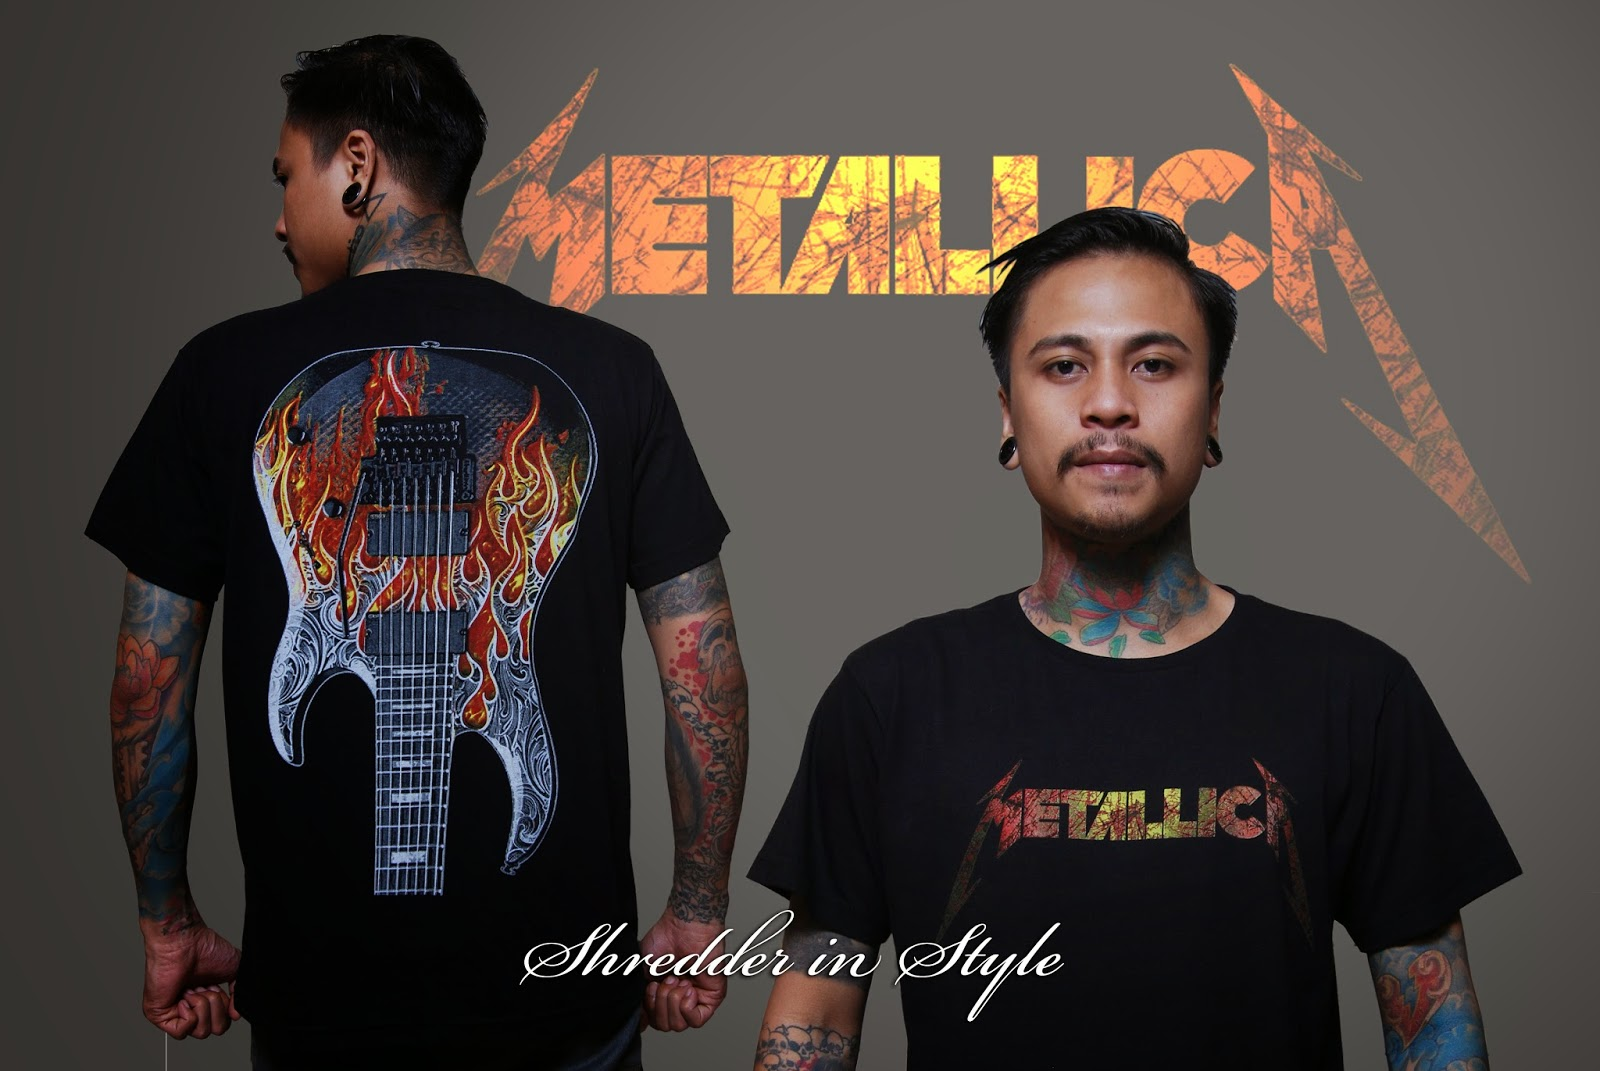 Shredder In Style Kaos Metallica Gitar Flame Metalica Deskripsi Ukuran M L Xl Body Fit Status Ready Stock Warna Hitam Harga Rp 100000